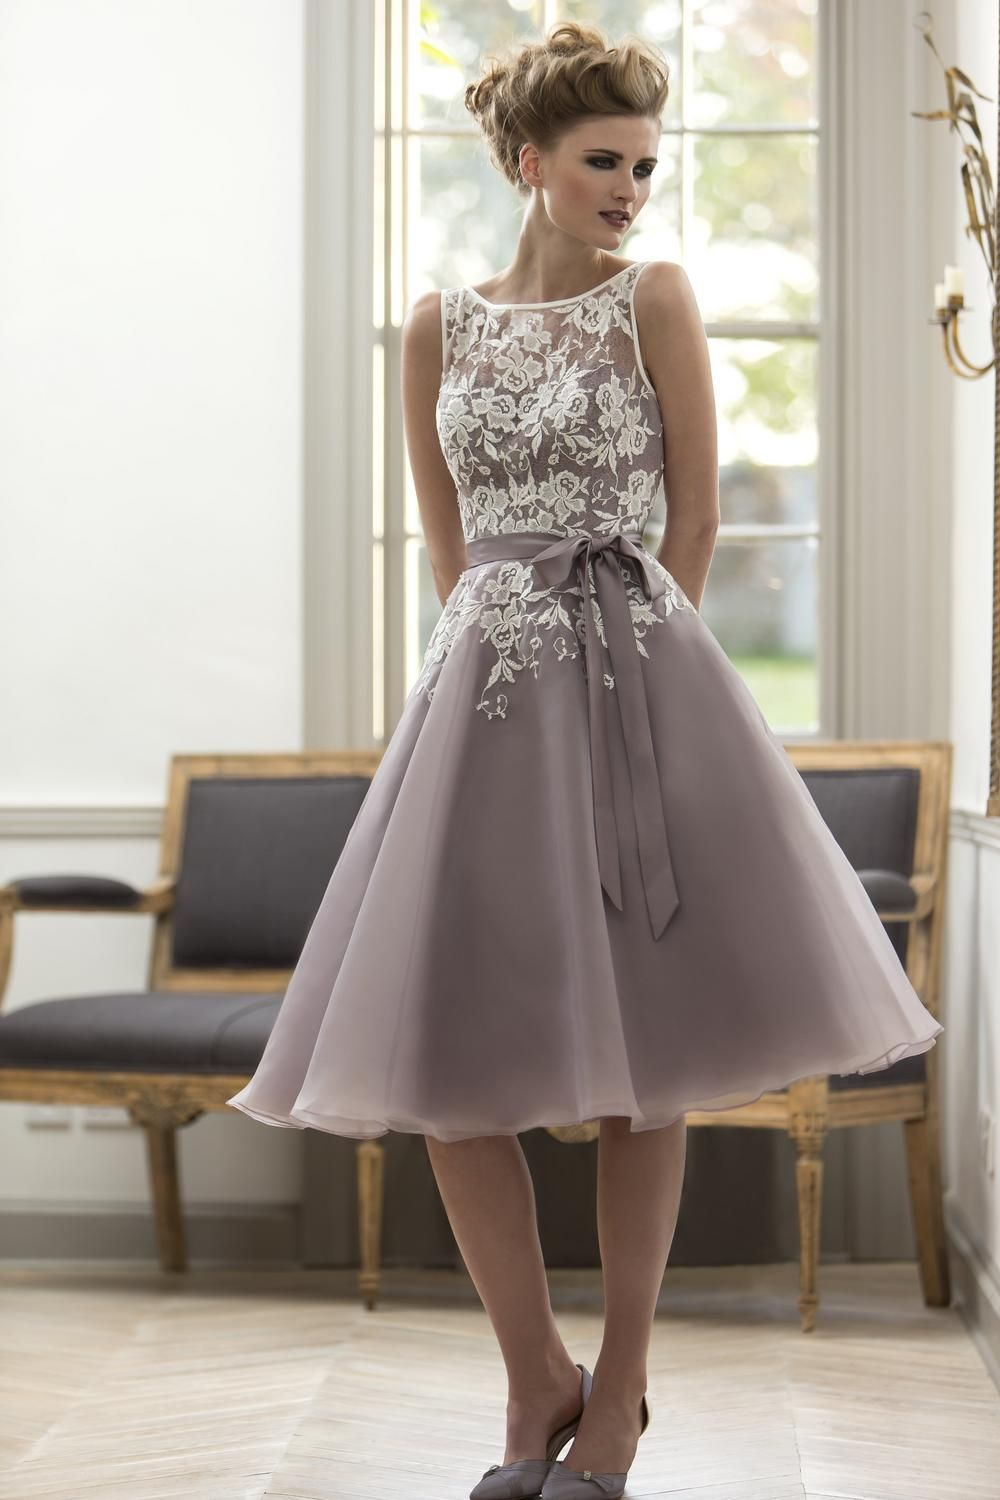 Pale Mauve Real Sample Lace Applique Bow Belt Knee Length Sleeves Bridesmaid  Dresses Long Maid Of Honor Dress For Wedding-in Bridesmaid Dresses from ... d8d0414f9ac2